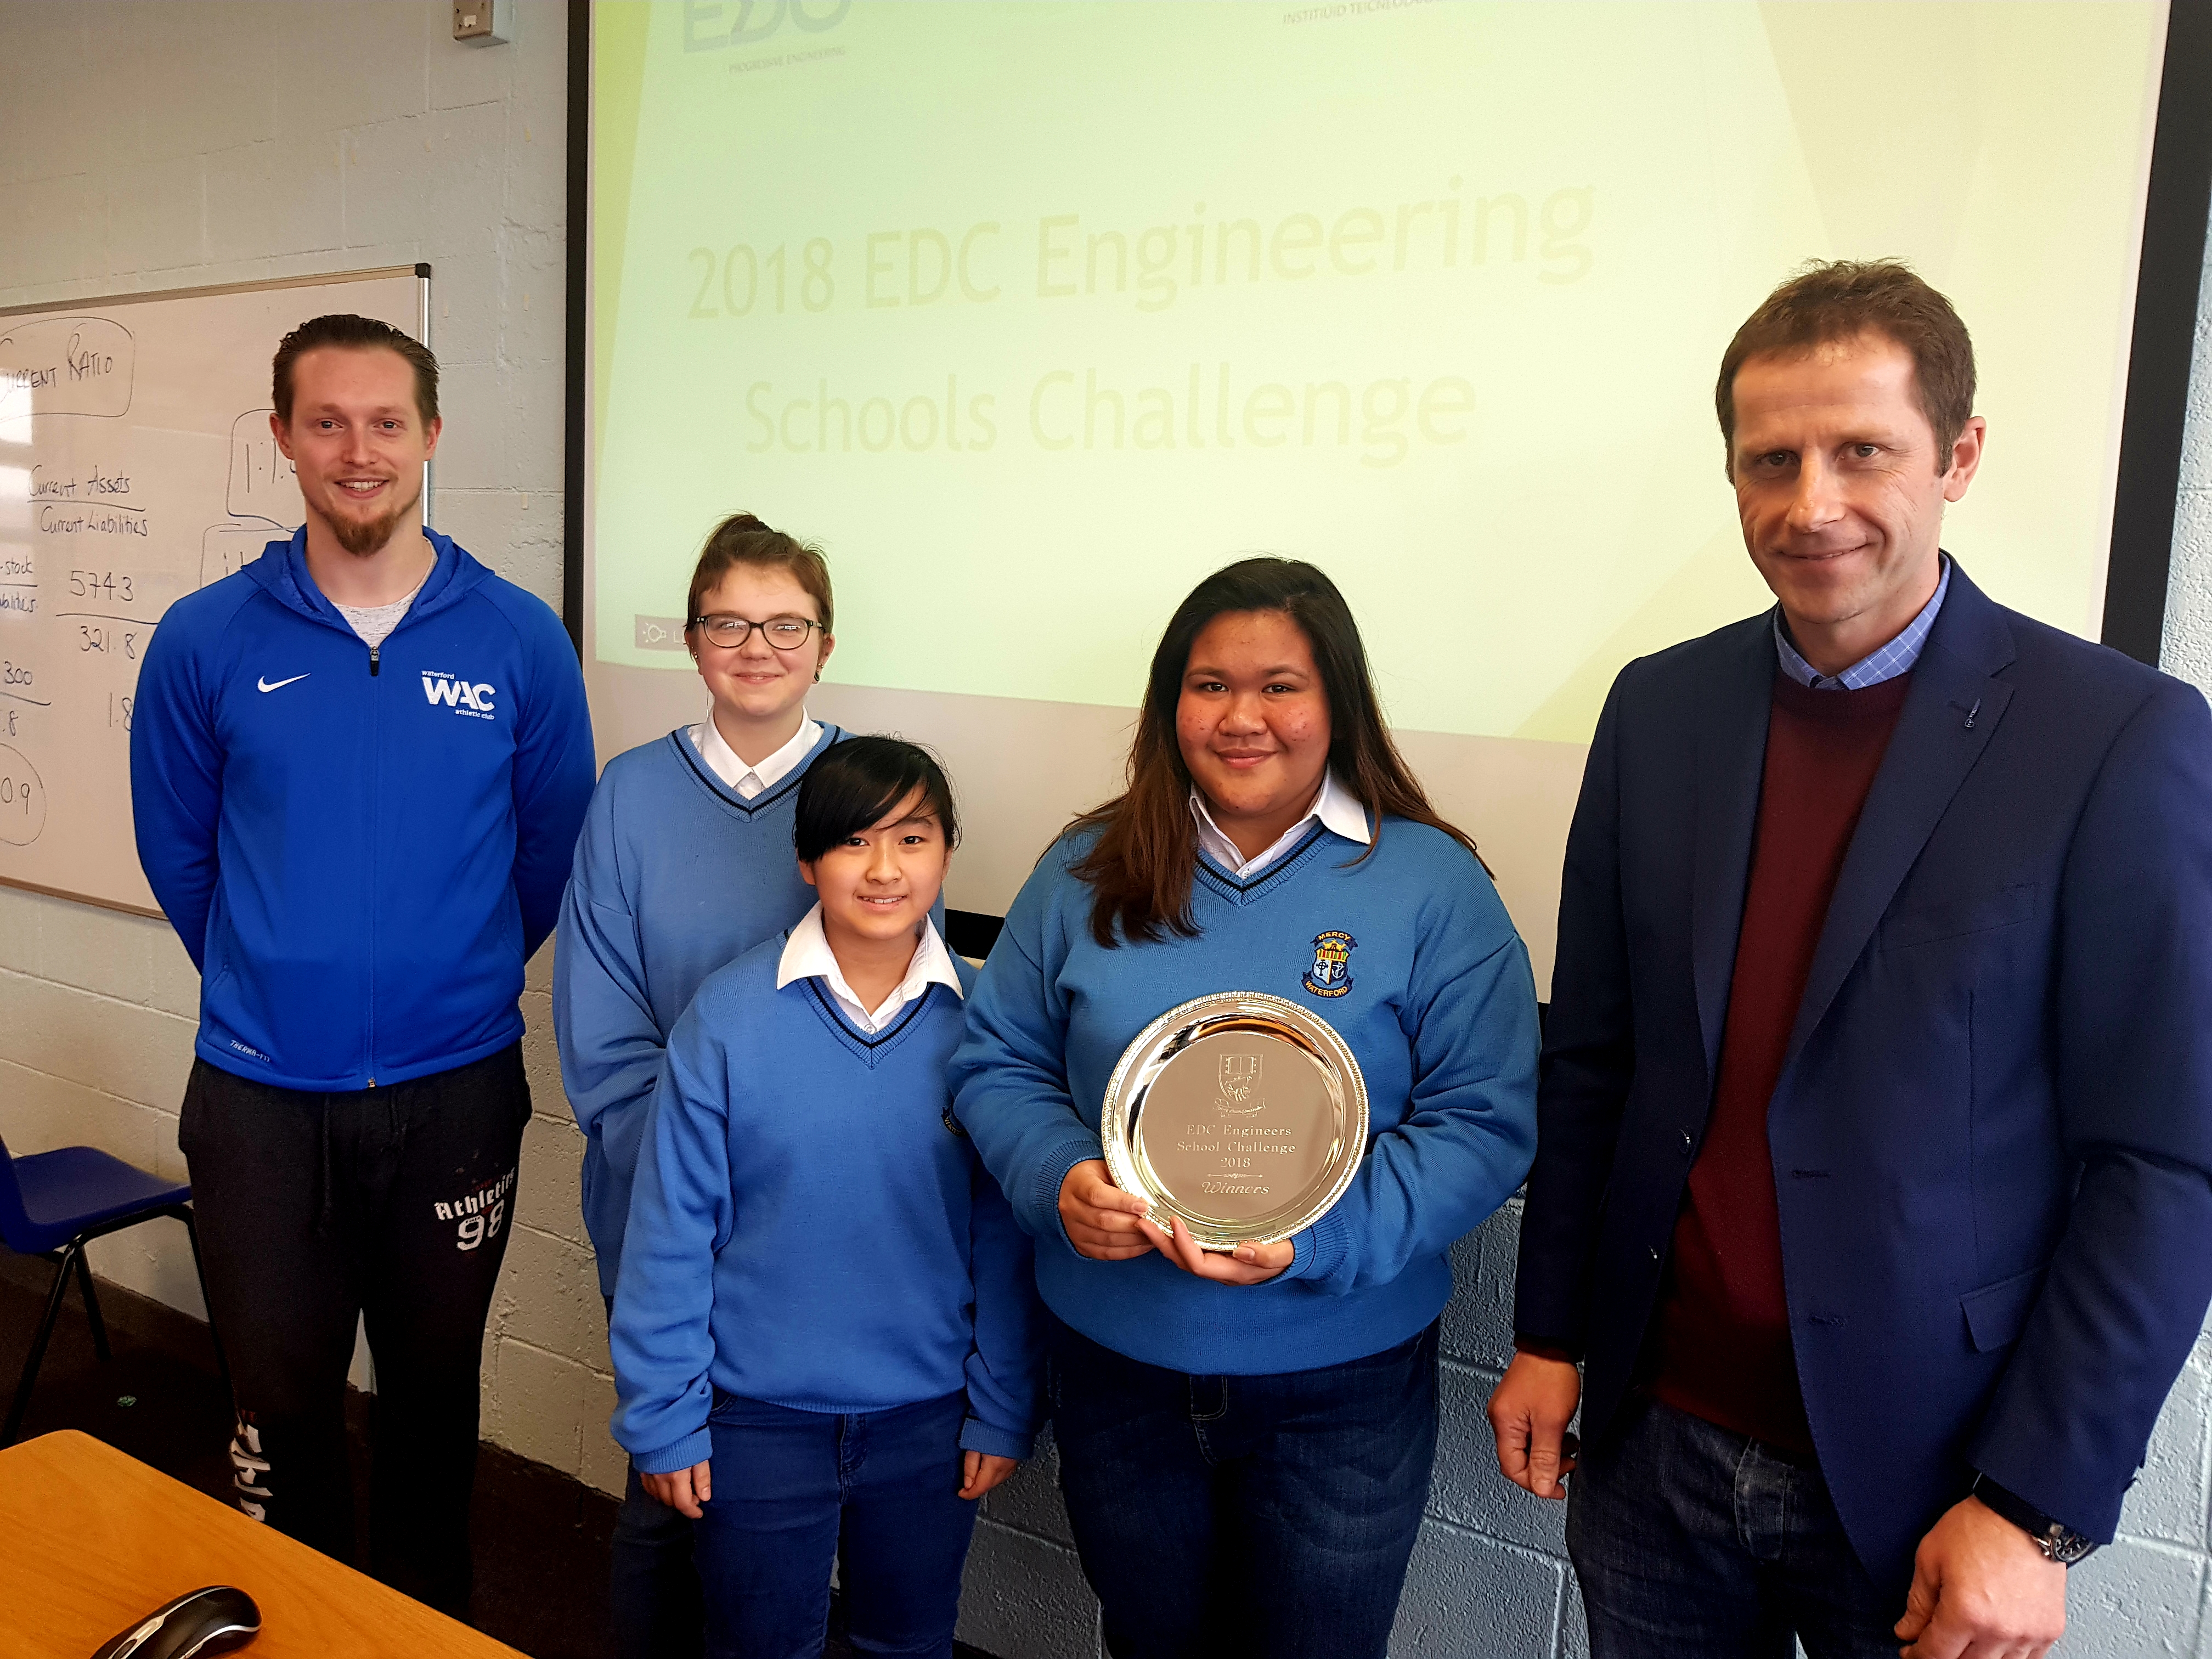 Mercy Secondary School Waterford winners of the EDC Engineering challenge